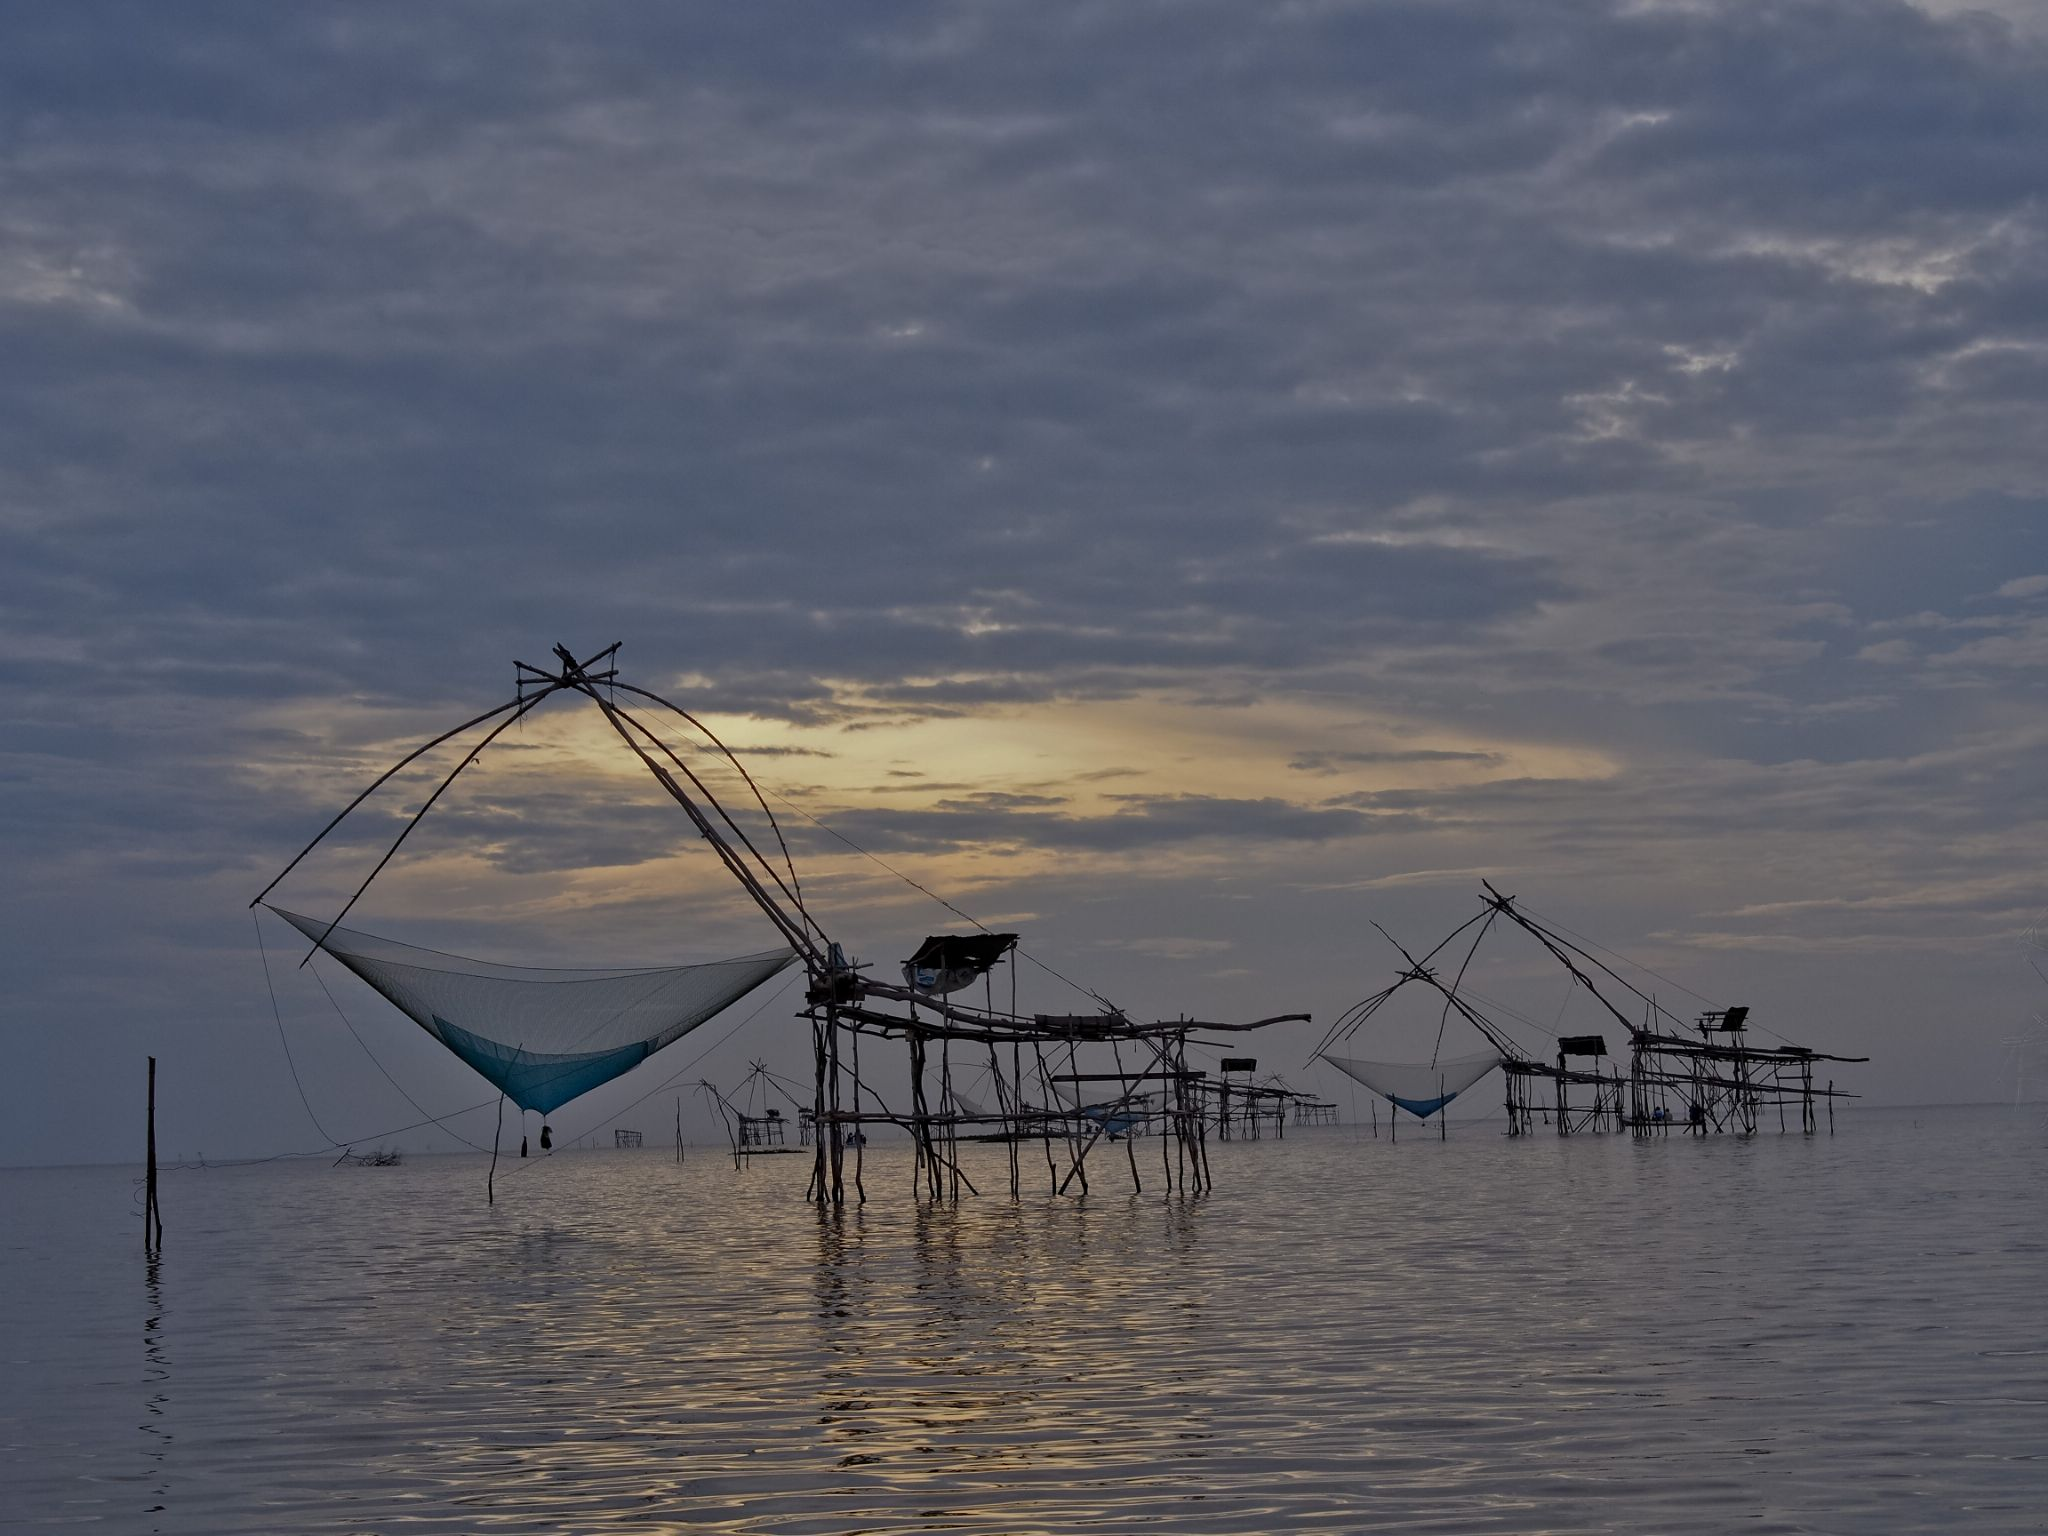 Fishing traps @ Phatthalung Lake in the early morning by Victor Kam